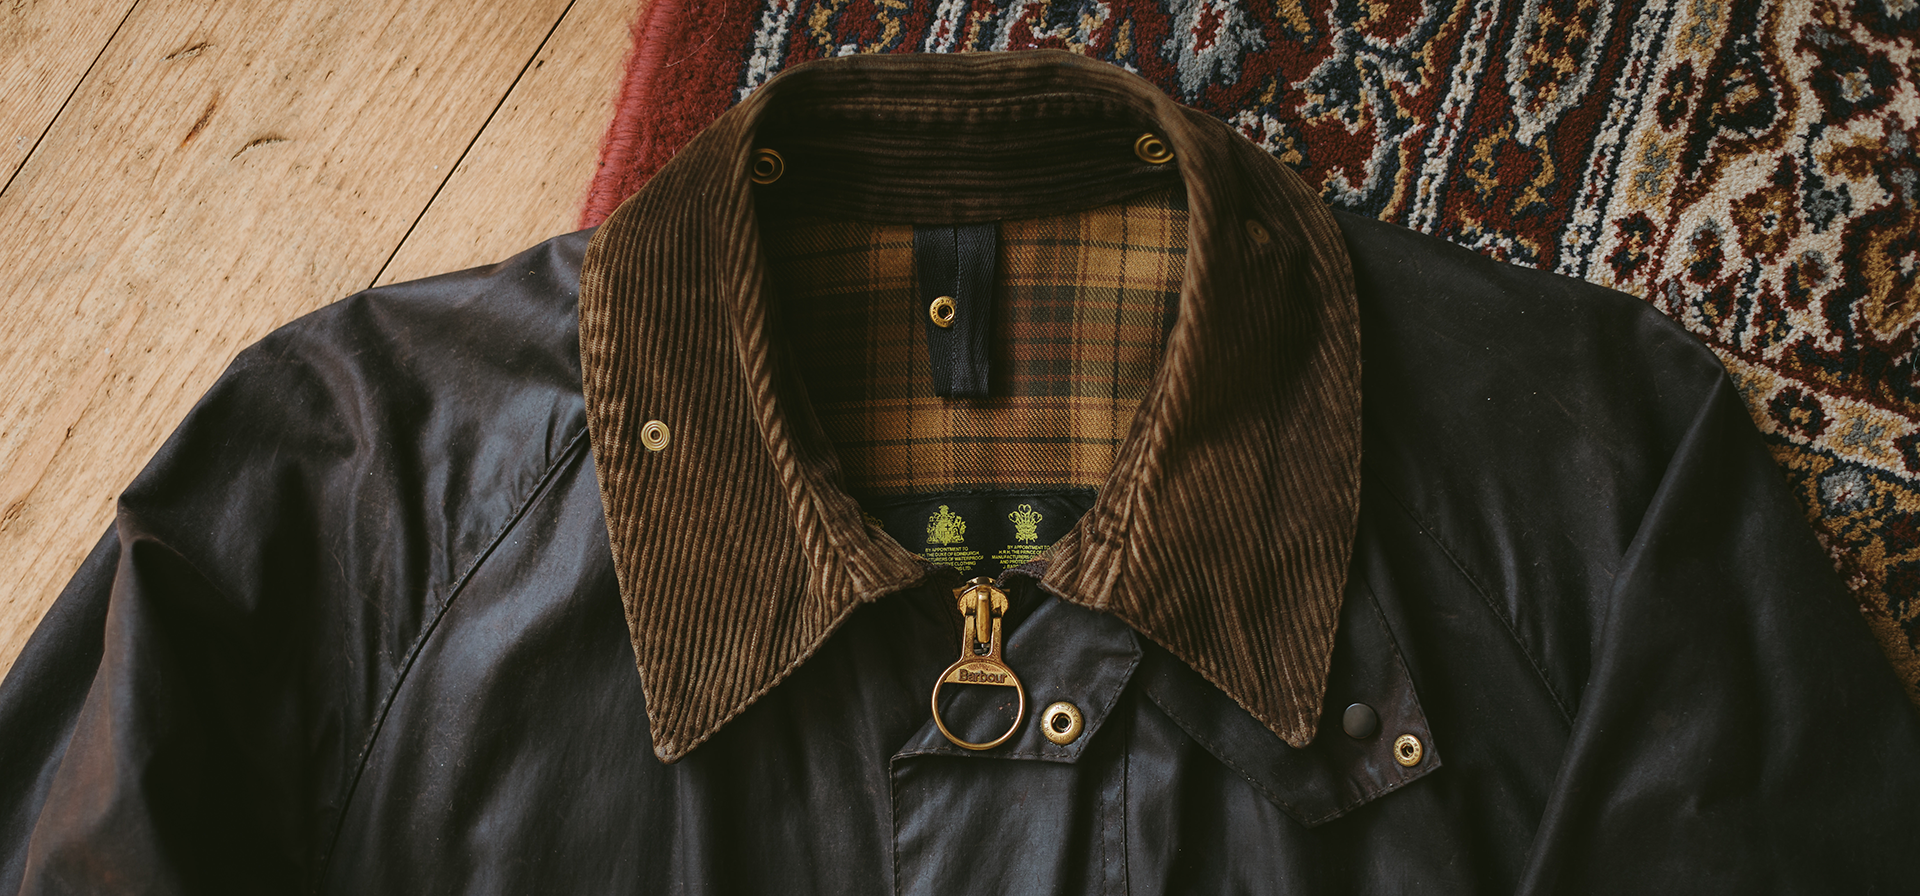 (Barbour) Barbour Waxed Jacket